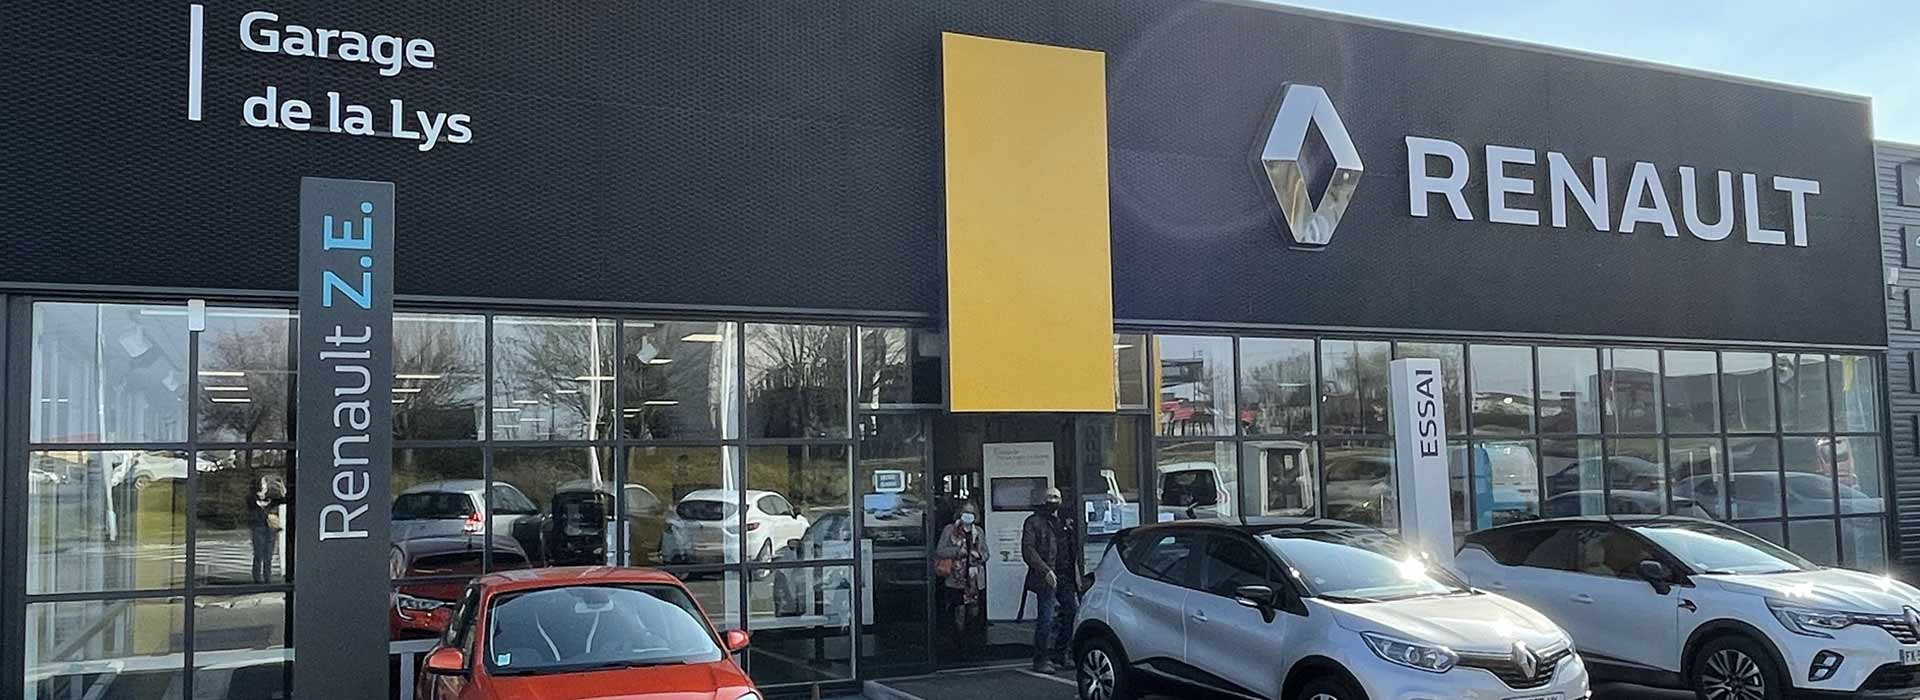 Renault englos concessionnaire garage nord 59 for Garage renault douai horaires